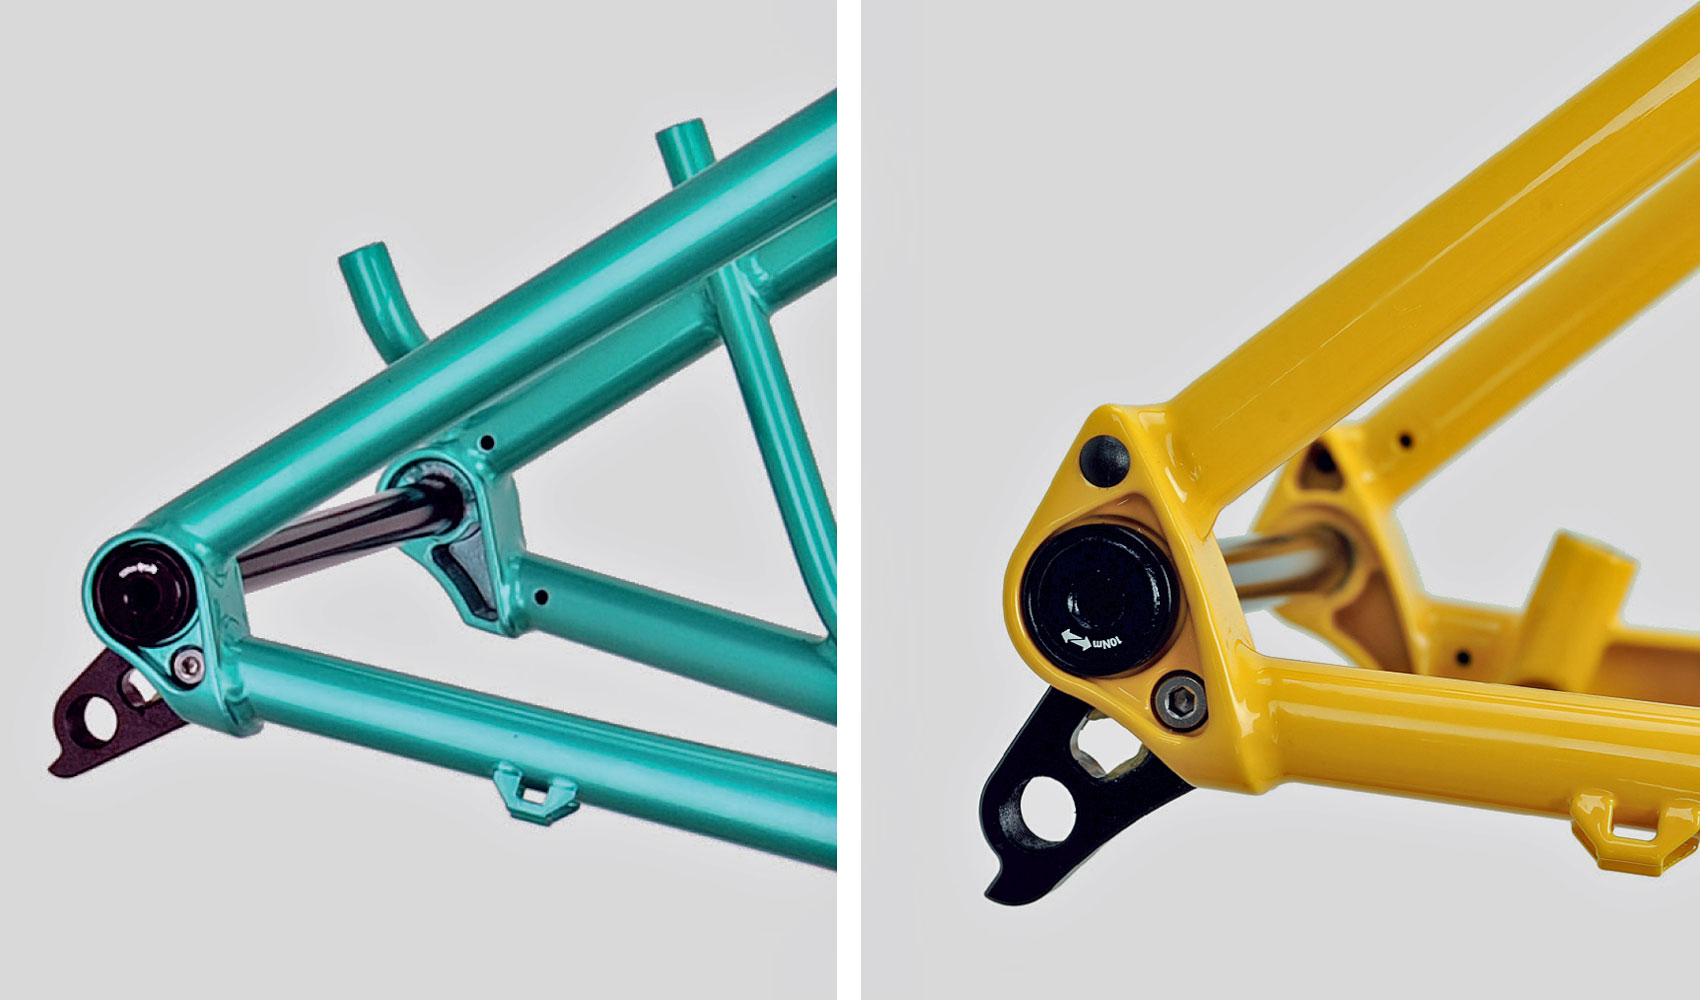 2021 Sour Bikes affordable steel frame updates, new dropouts